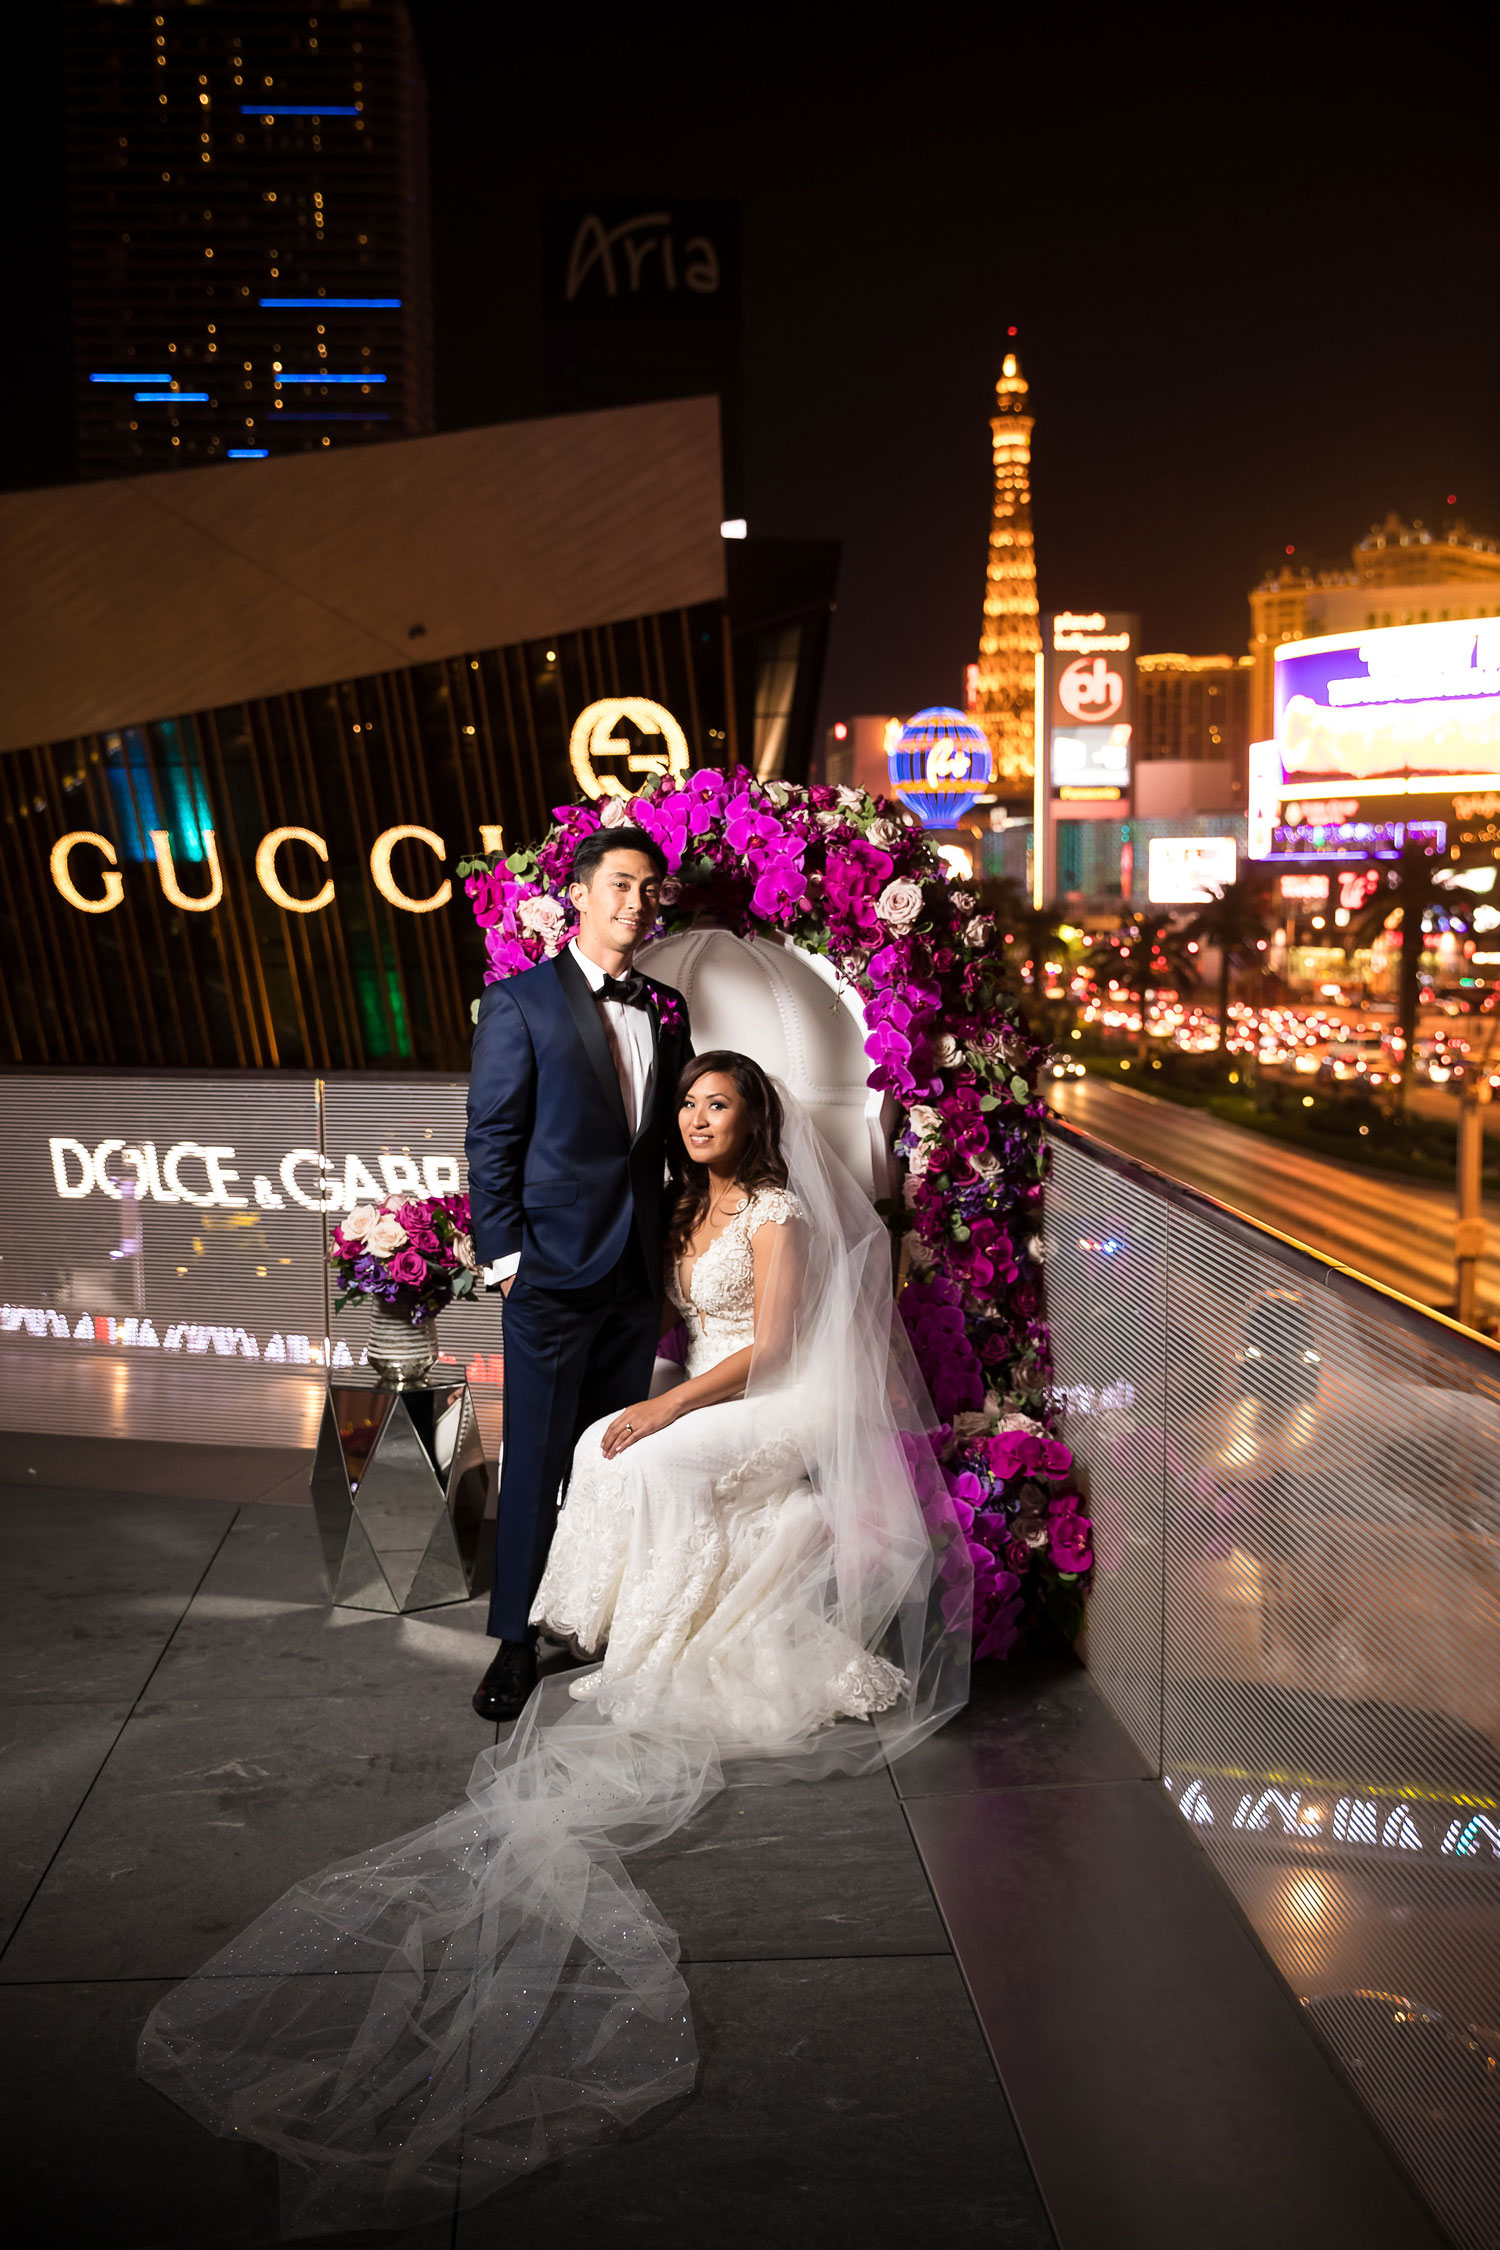 Bride and groom Las Vegas wedding portrait on The Strip